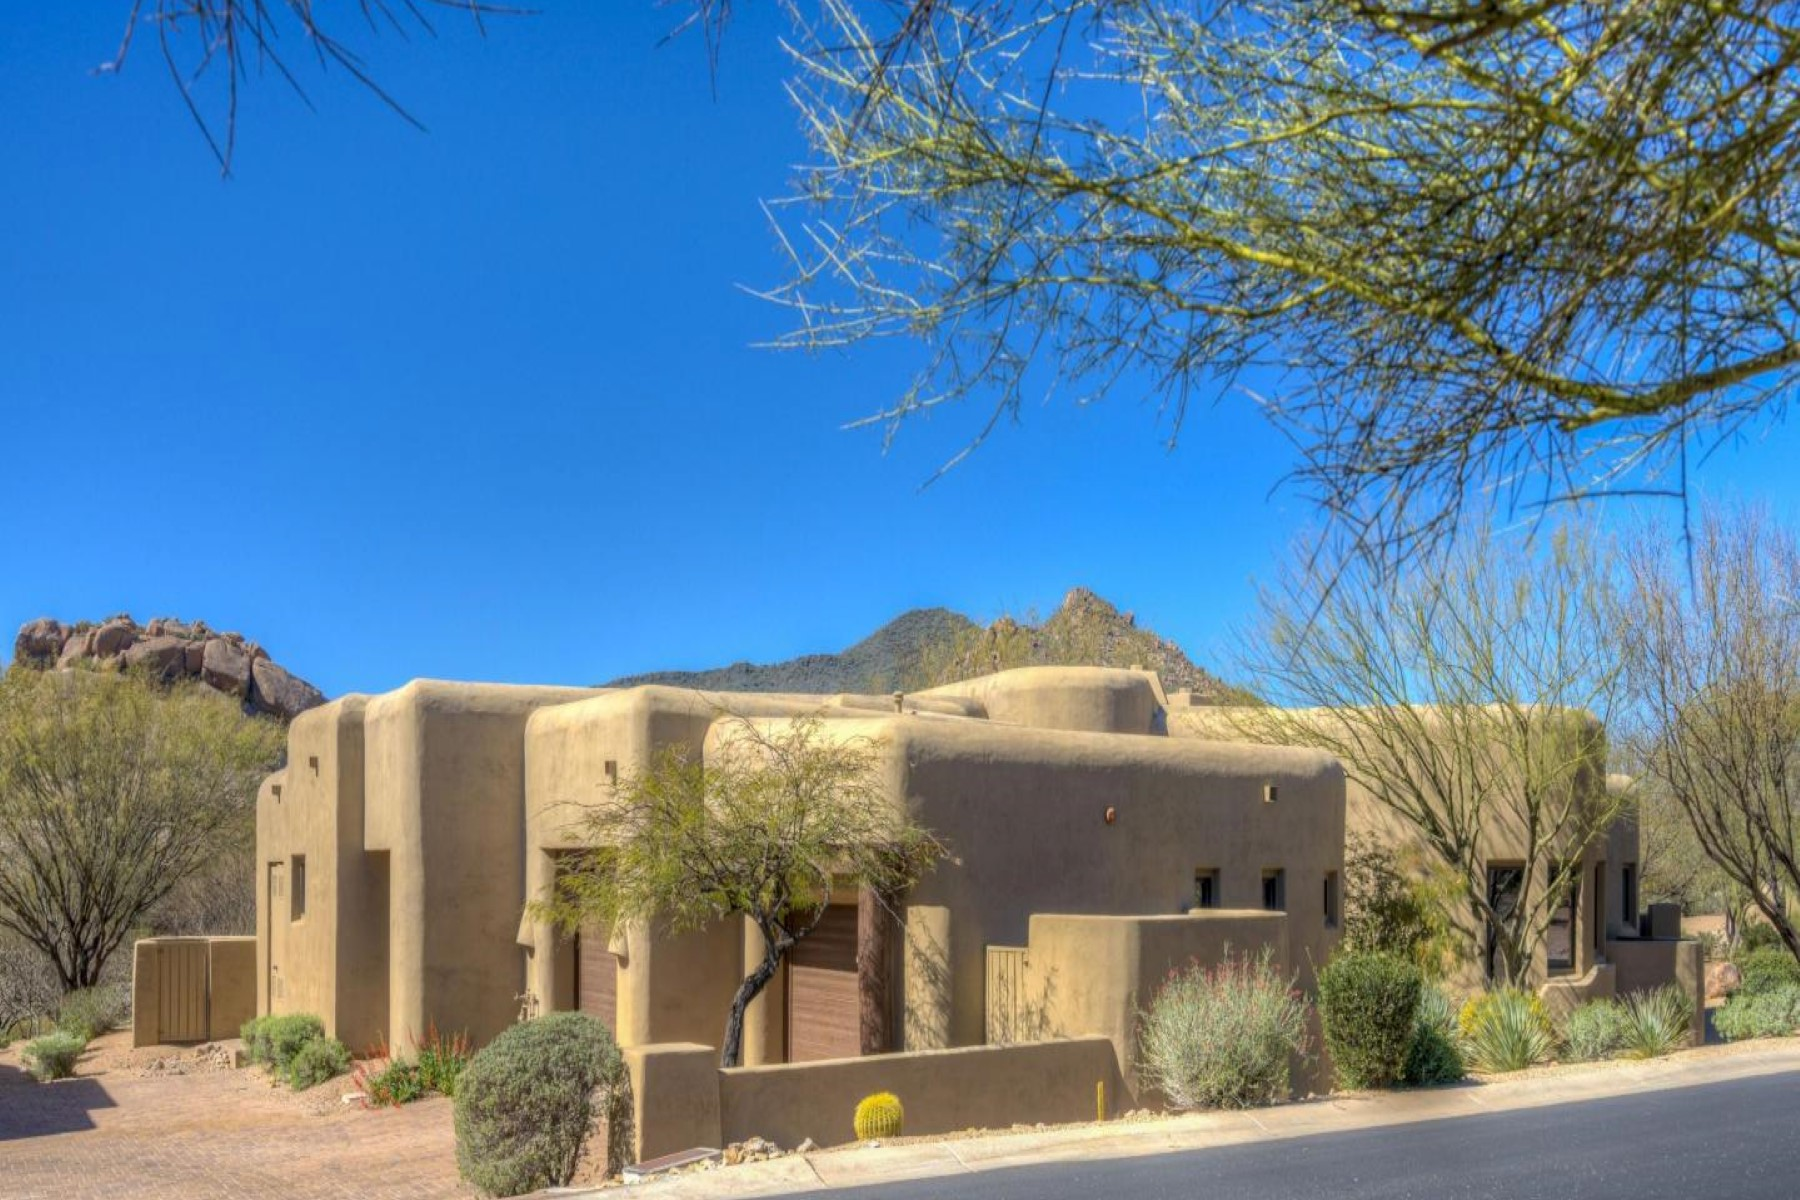 rentals property at Lovely rental in The Boulders Scottsdale